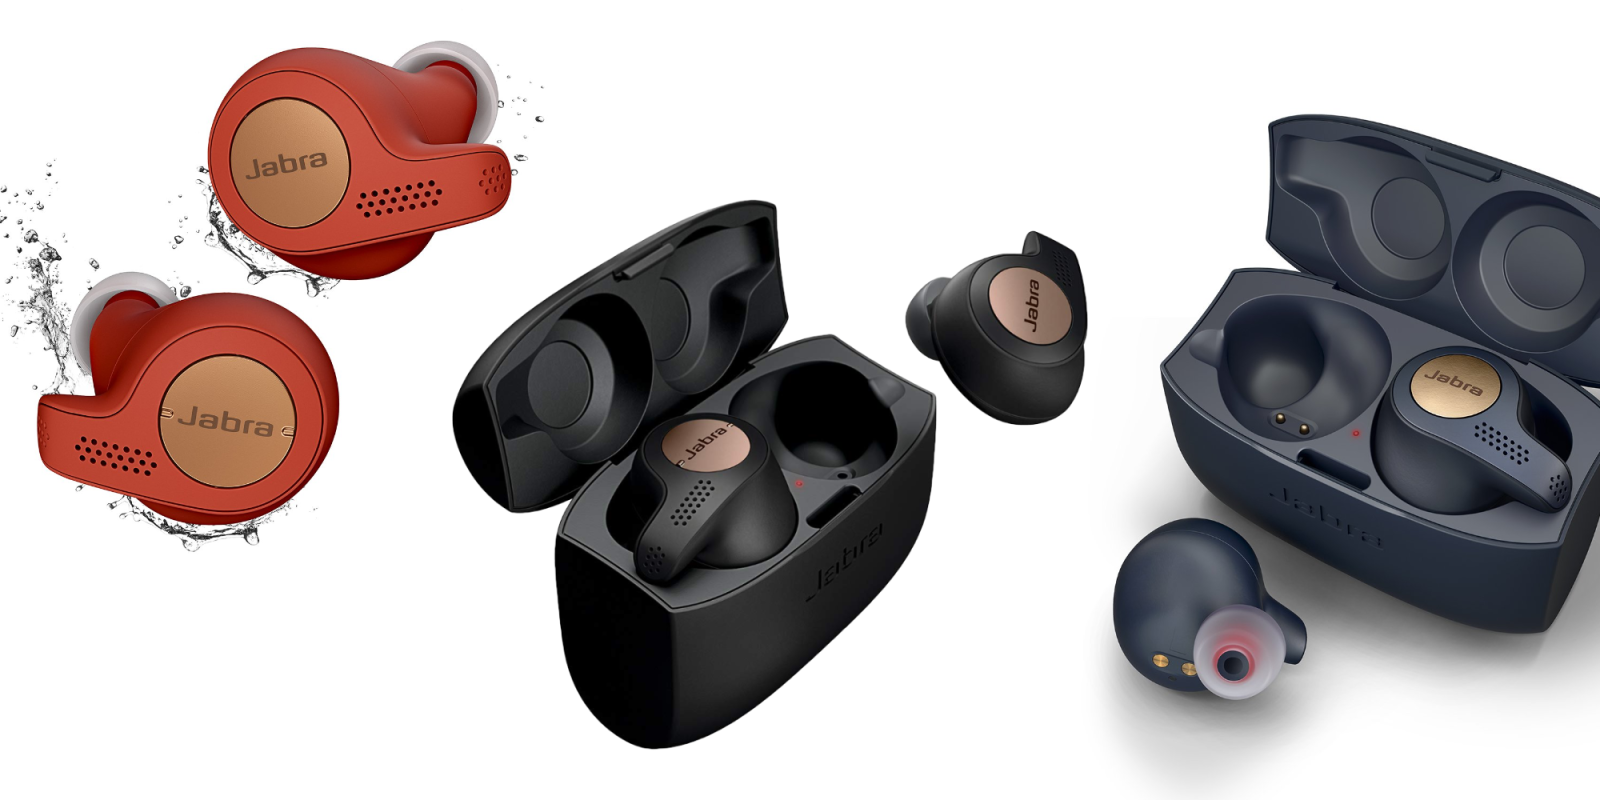 Save $40 on Jabra's Elite Active 65t True Wireless Sports Earbuds at $150